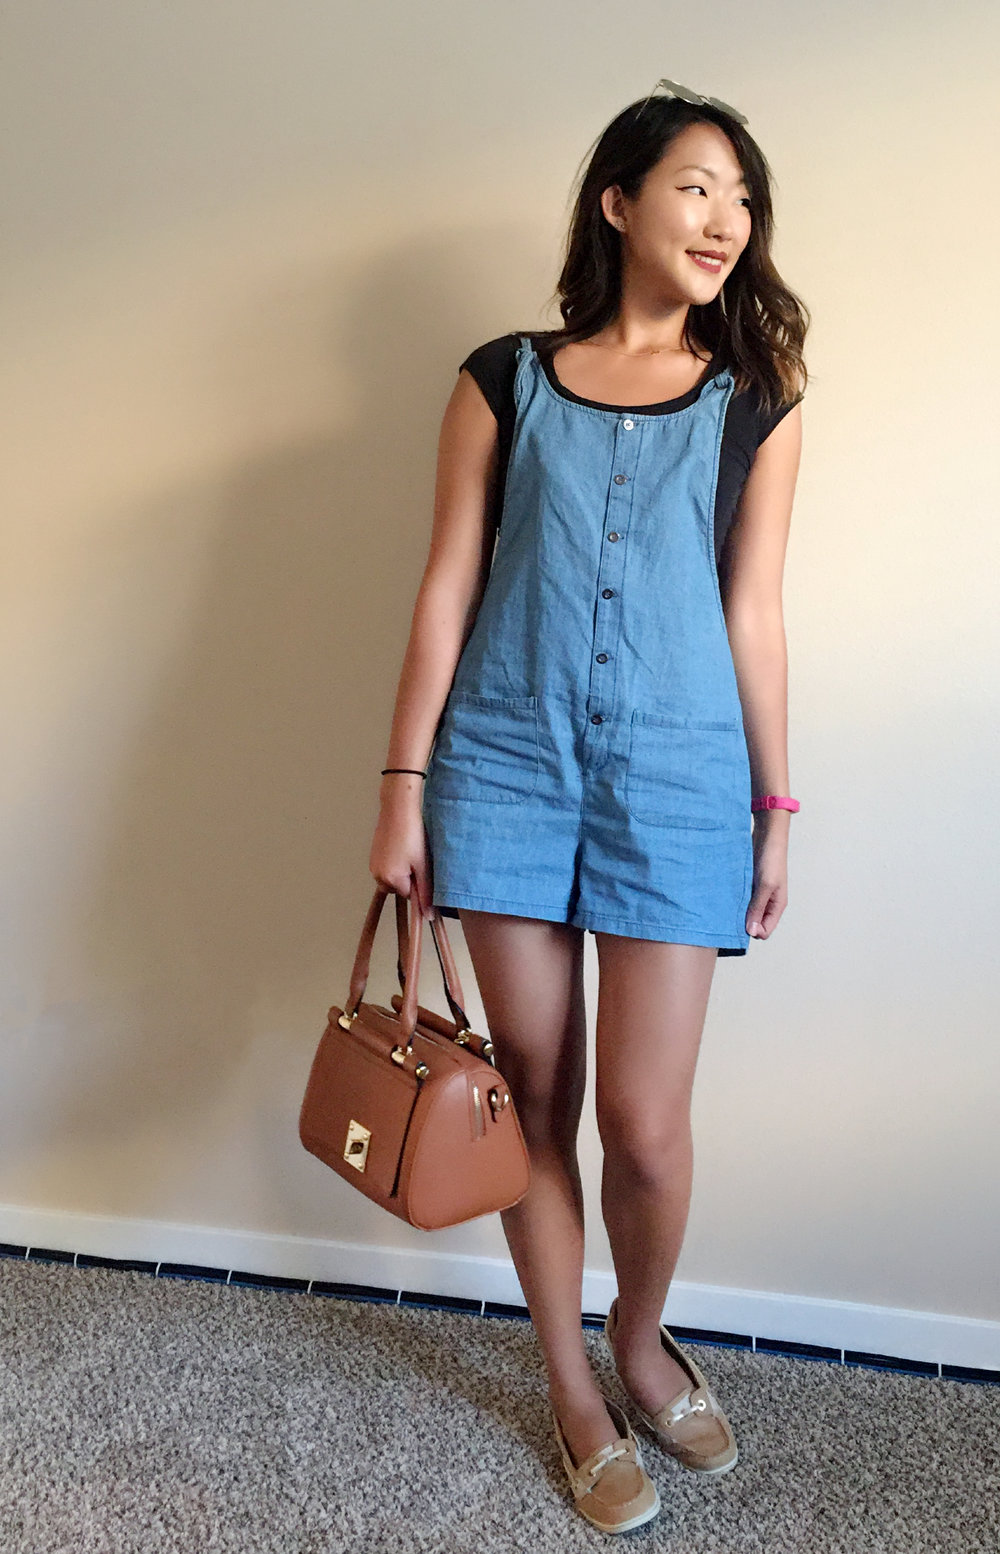 Romper: Ragstock | Lipstick: Colour Pop | Shoes: Sperry | Sunglasses: Target | Bag: Target